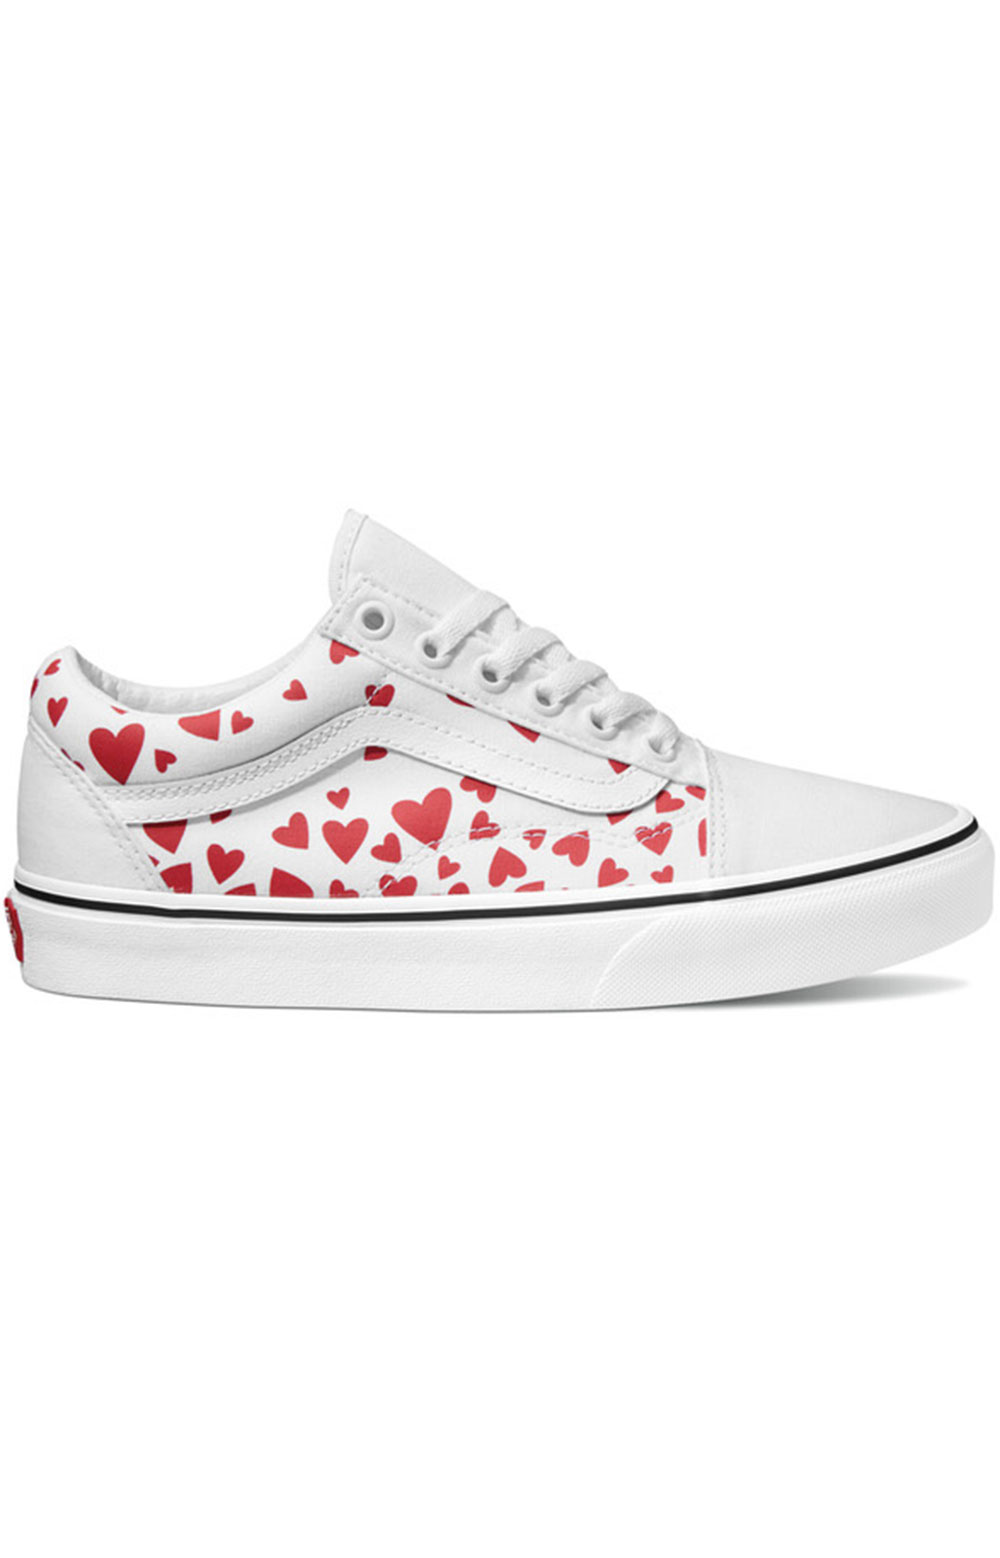 (WKT4S0) Valentines Hearts Old Skool Shoes - White